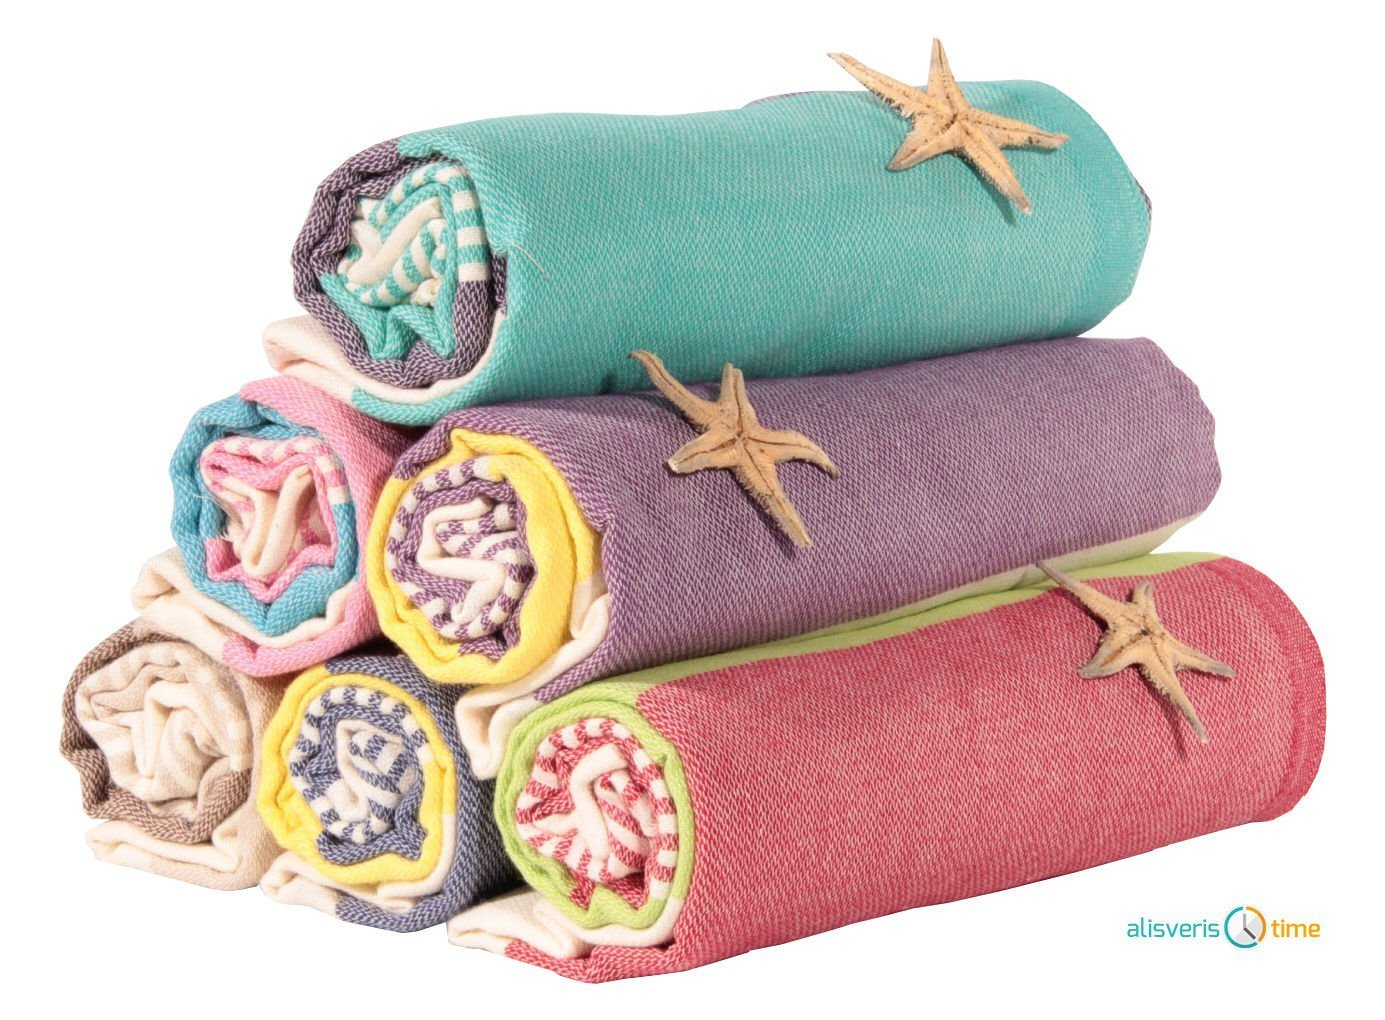 Sale Set of 6 XL Turkish Hamam Peshtemal Cotton Bath Face Towel Spa Bath USA Alisveristime 131976772700